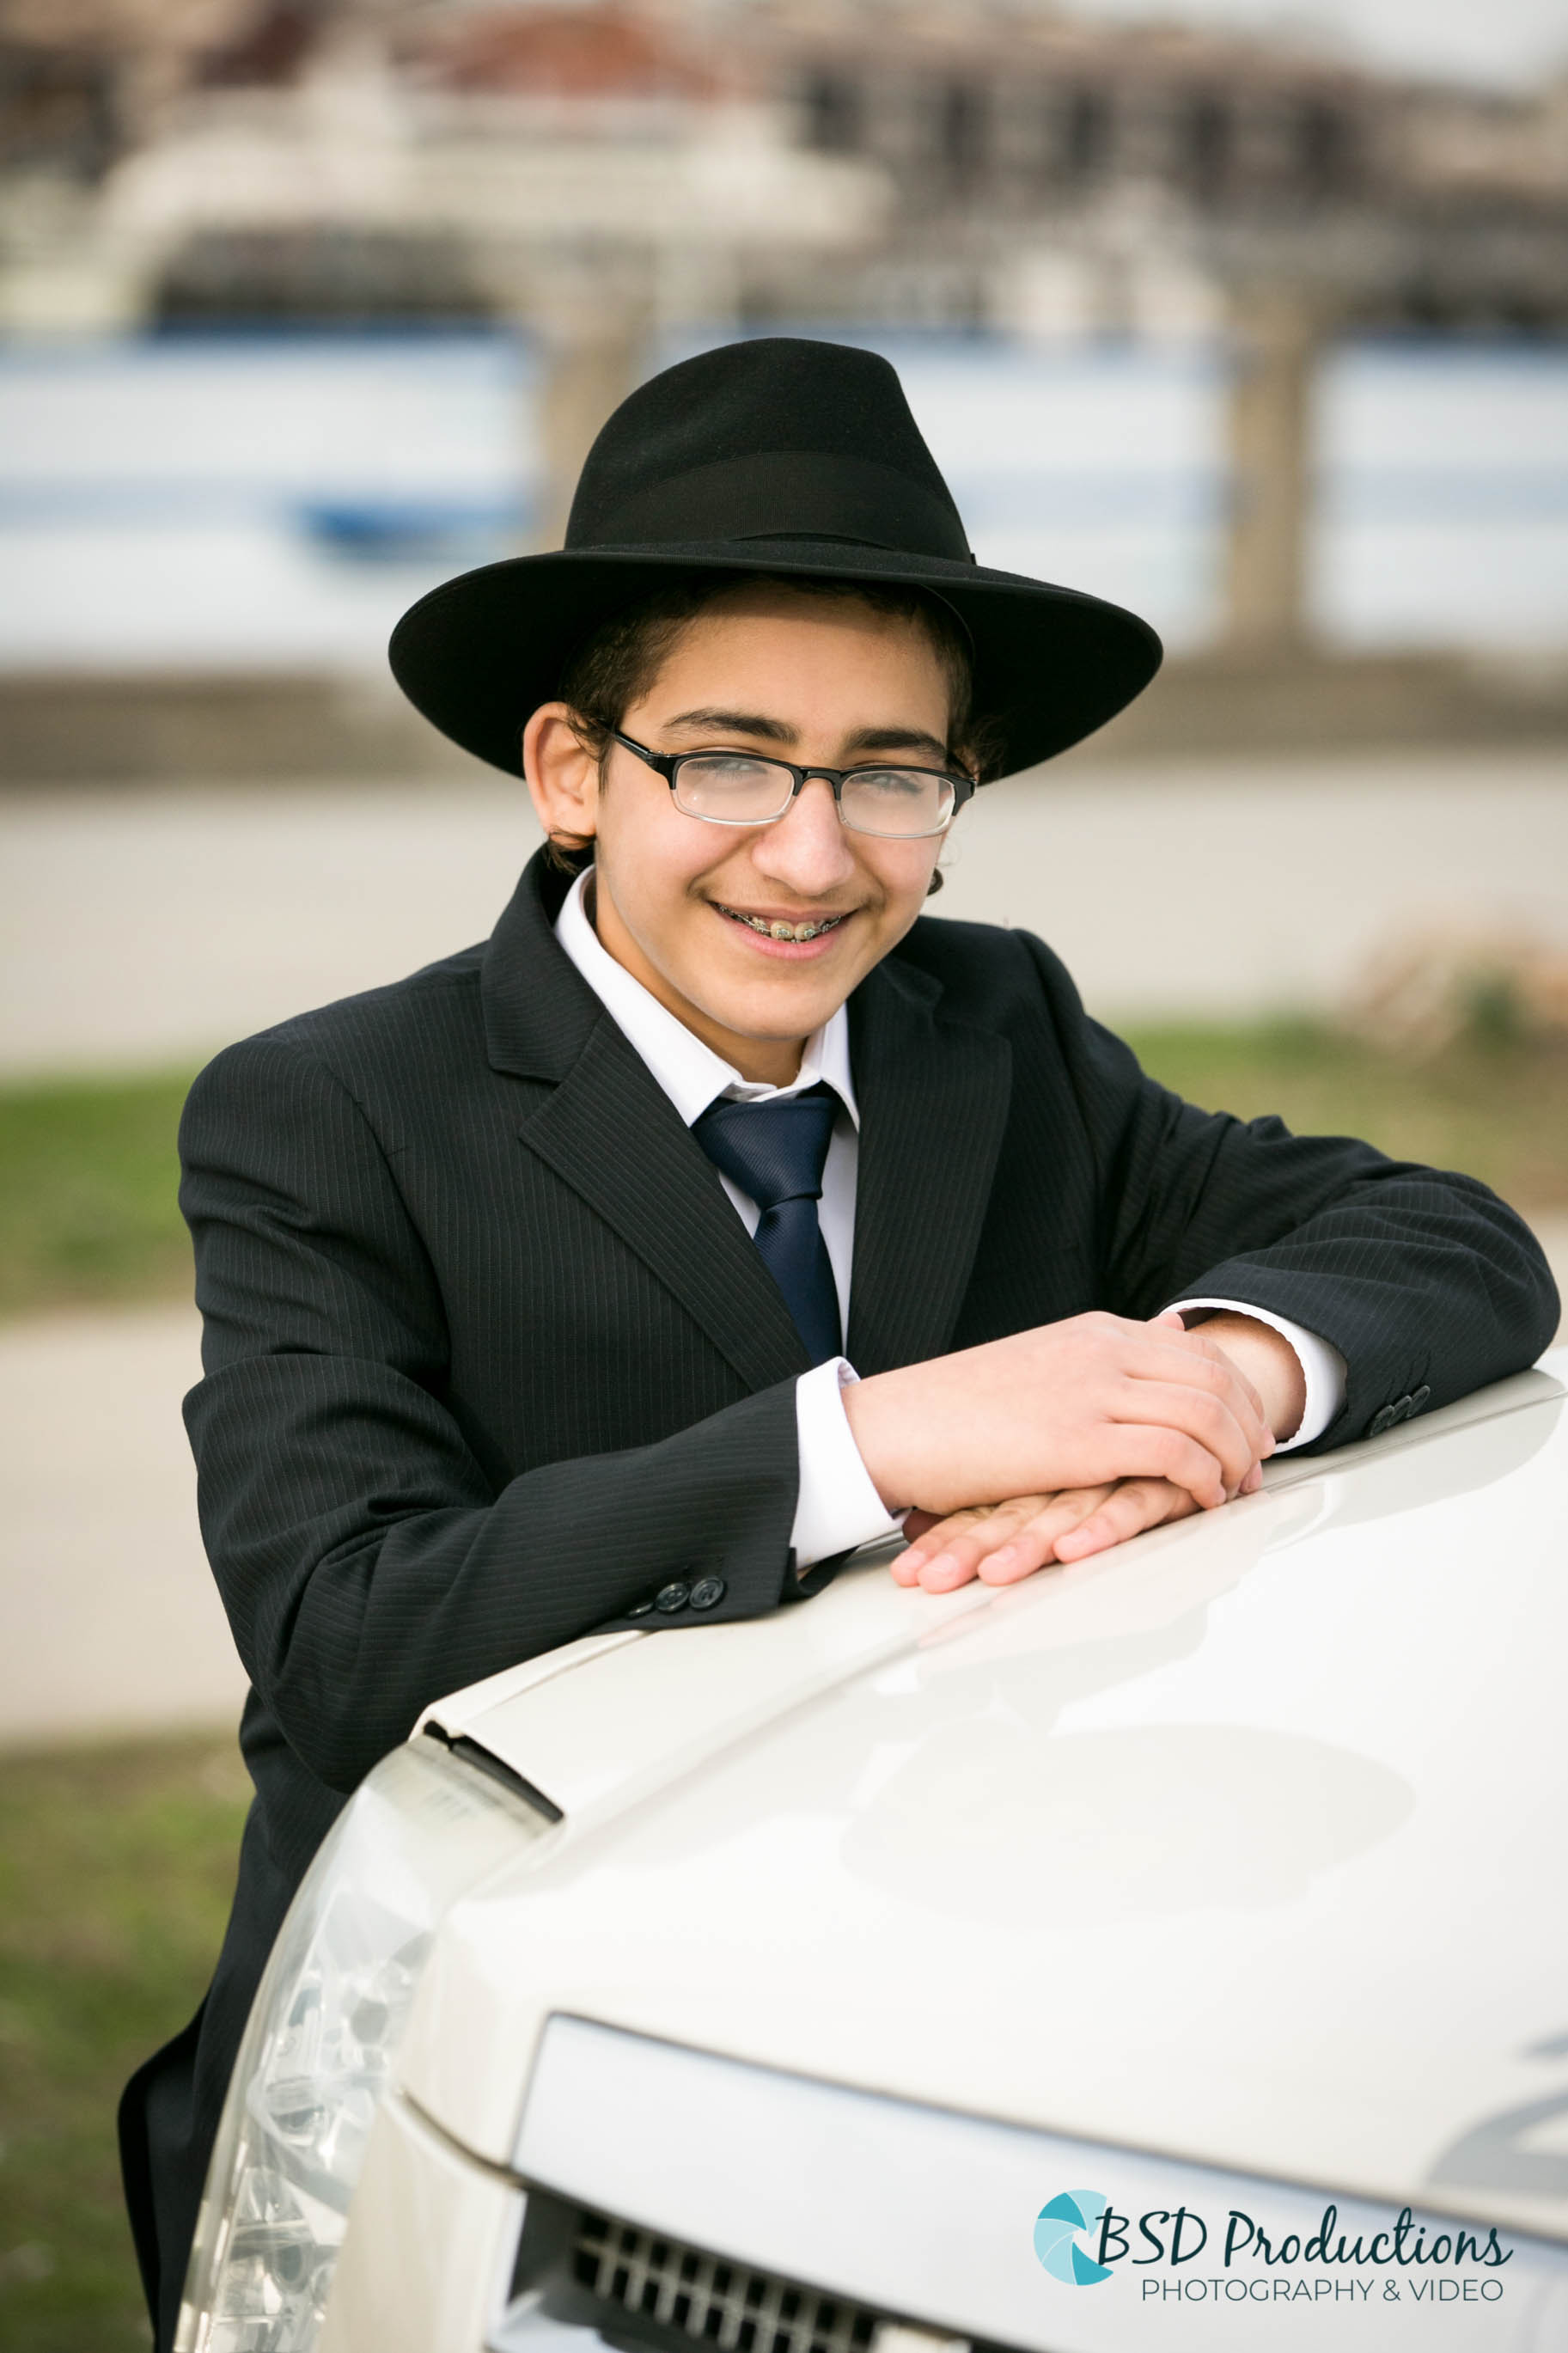 UH5A9237 Bar Mitzvah – BSD Productions Photography